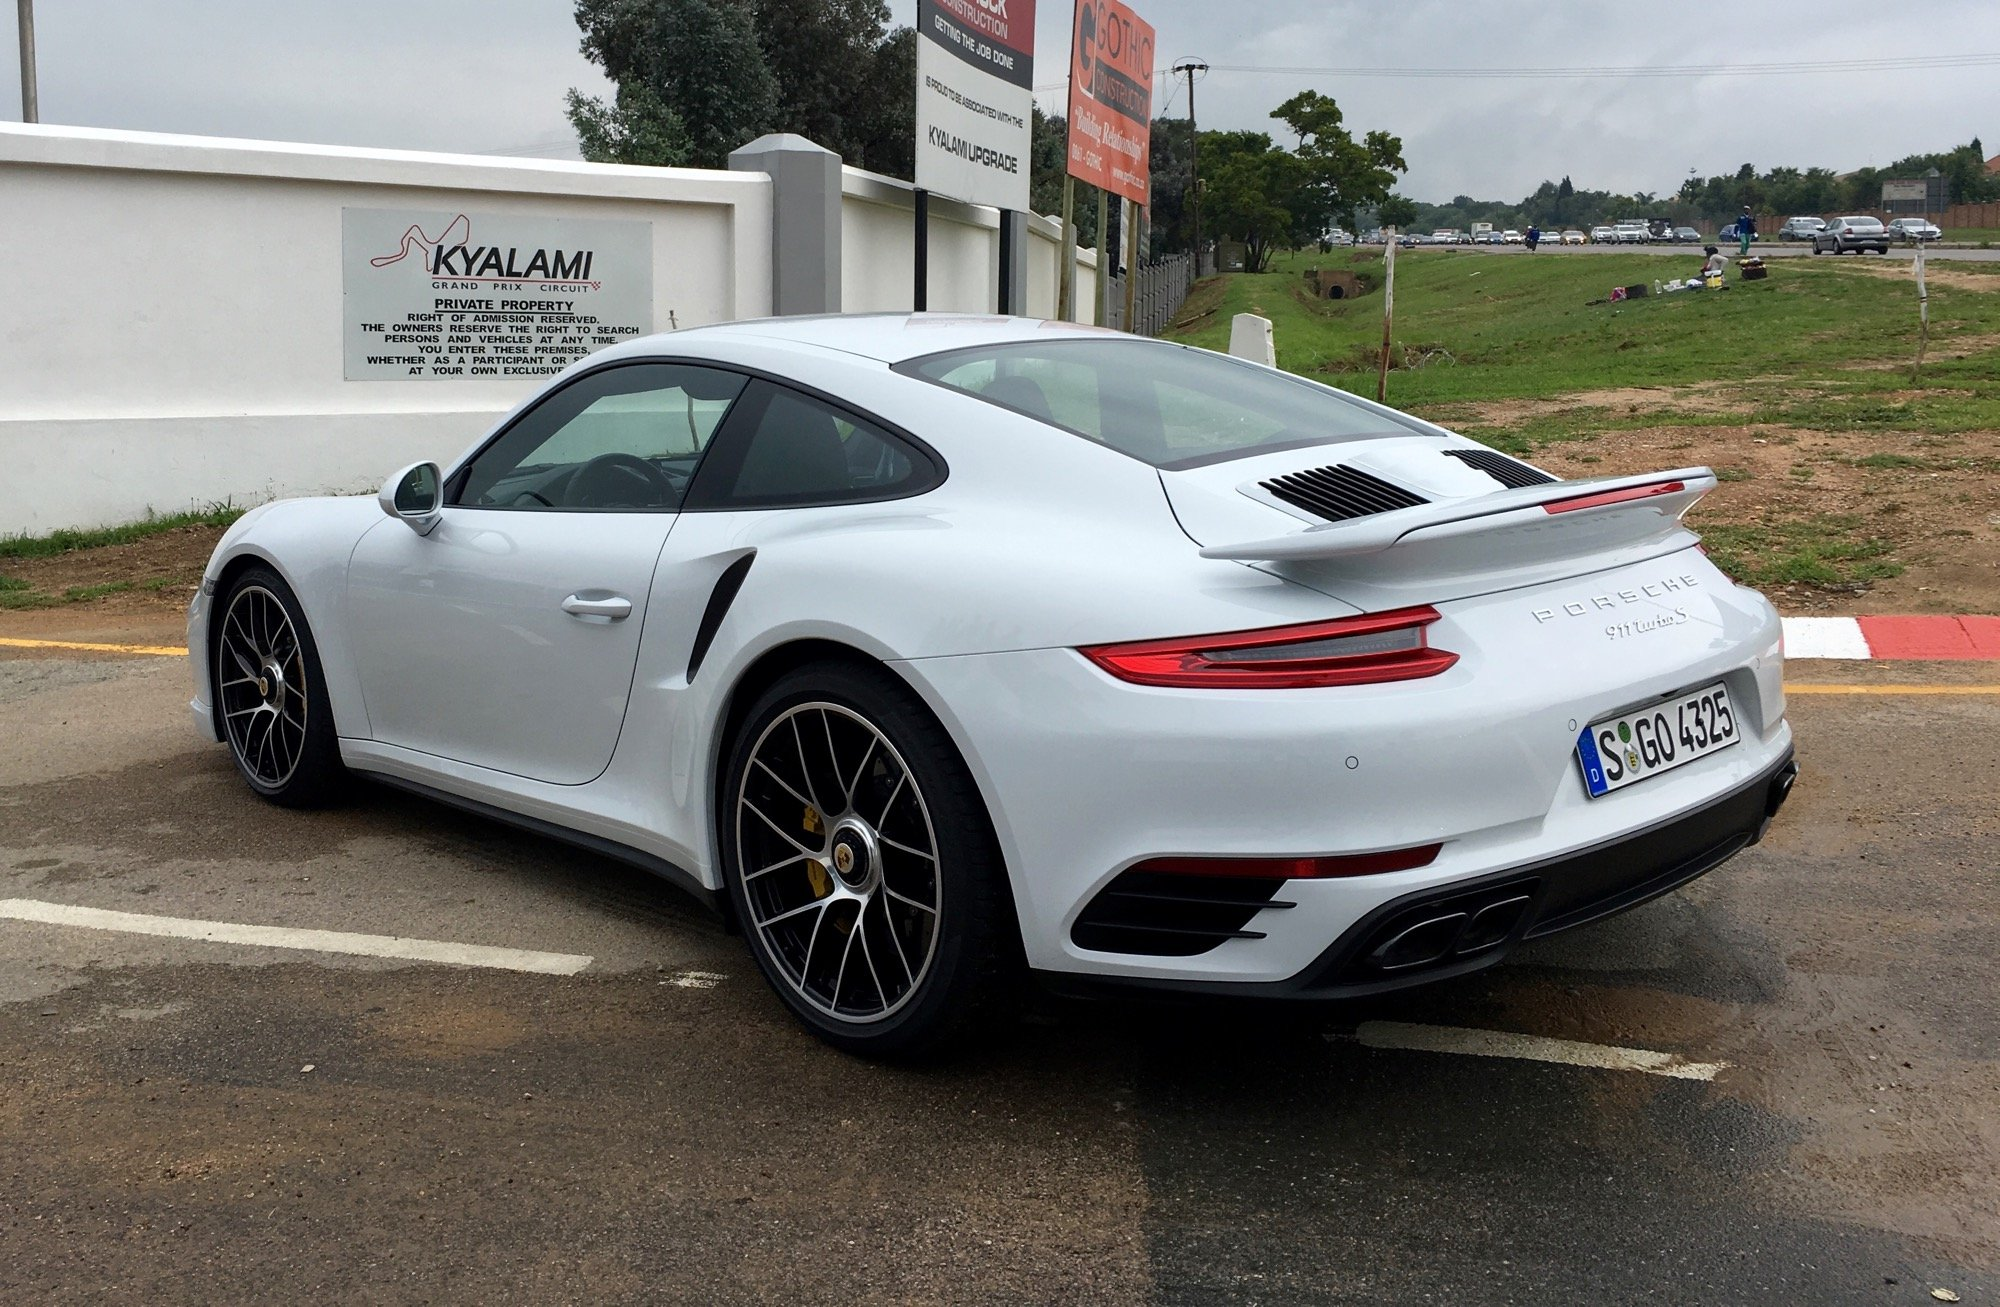 X Trail 2018 White >> 2016 Porsche 911 Turbo and Turbo S Review - photos | CarAdvice